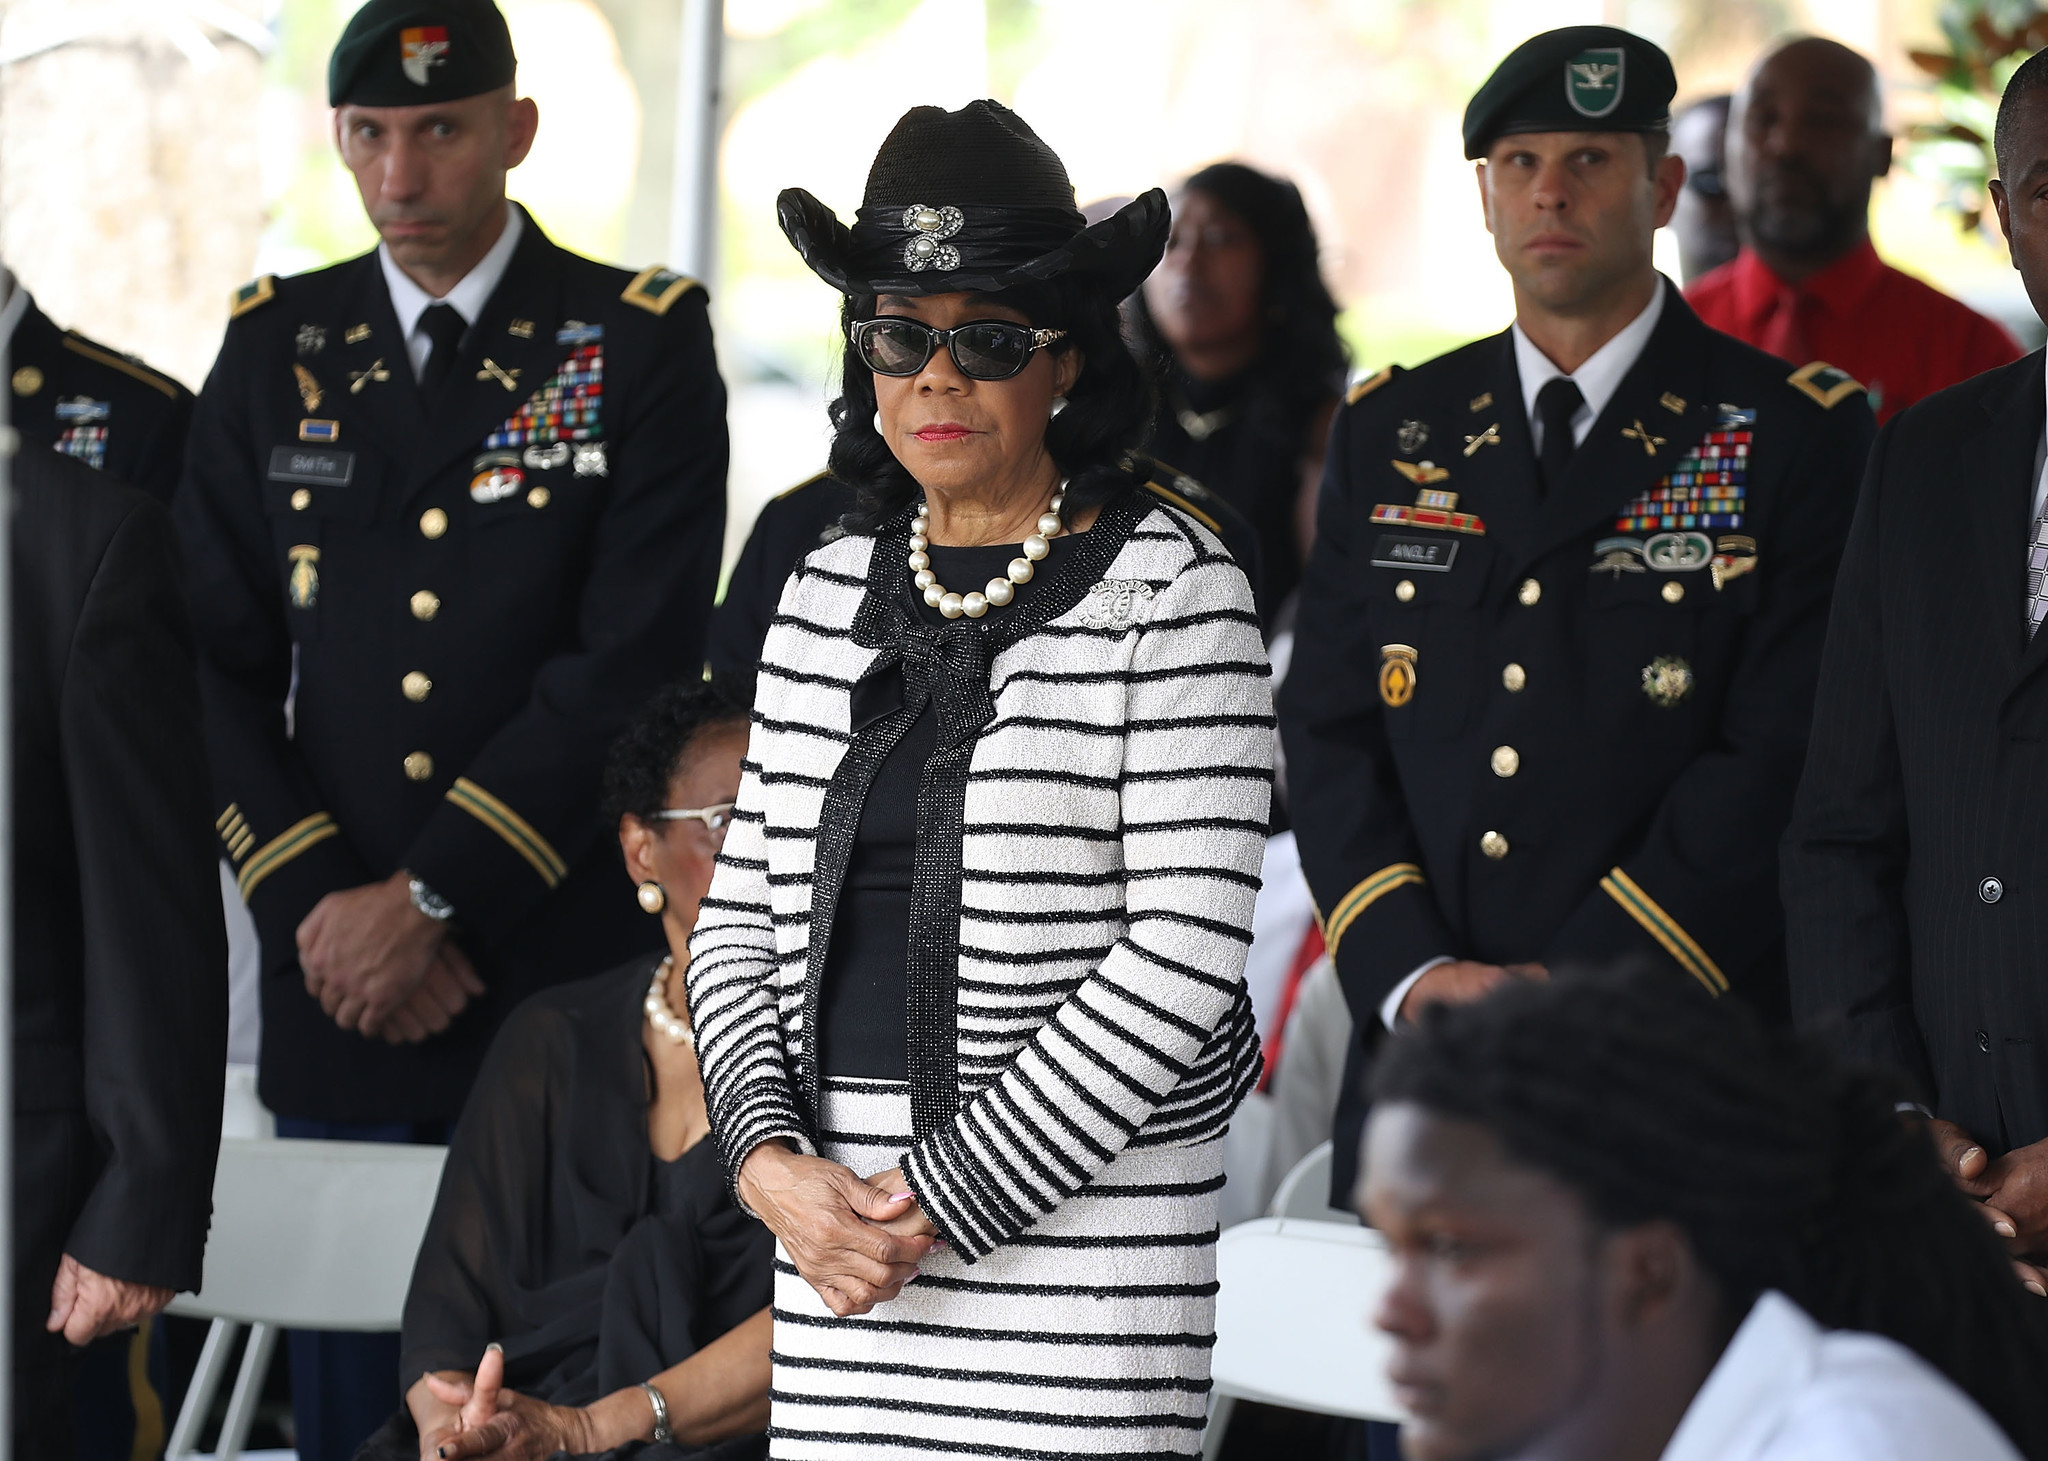 Rep. Wilson Accuses White House Chief Of Staff Of 'character Assassination,' Calls For Apology